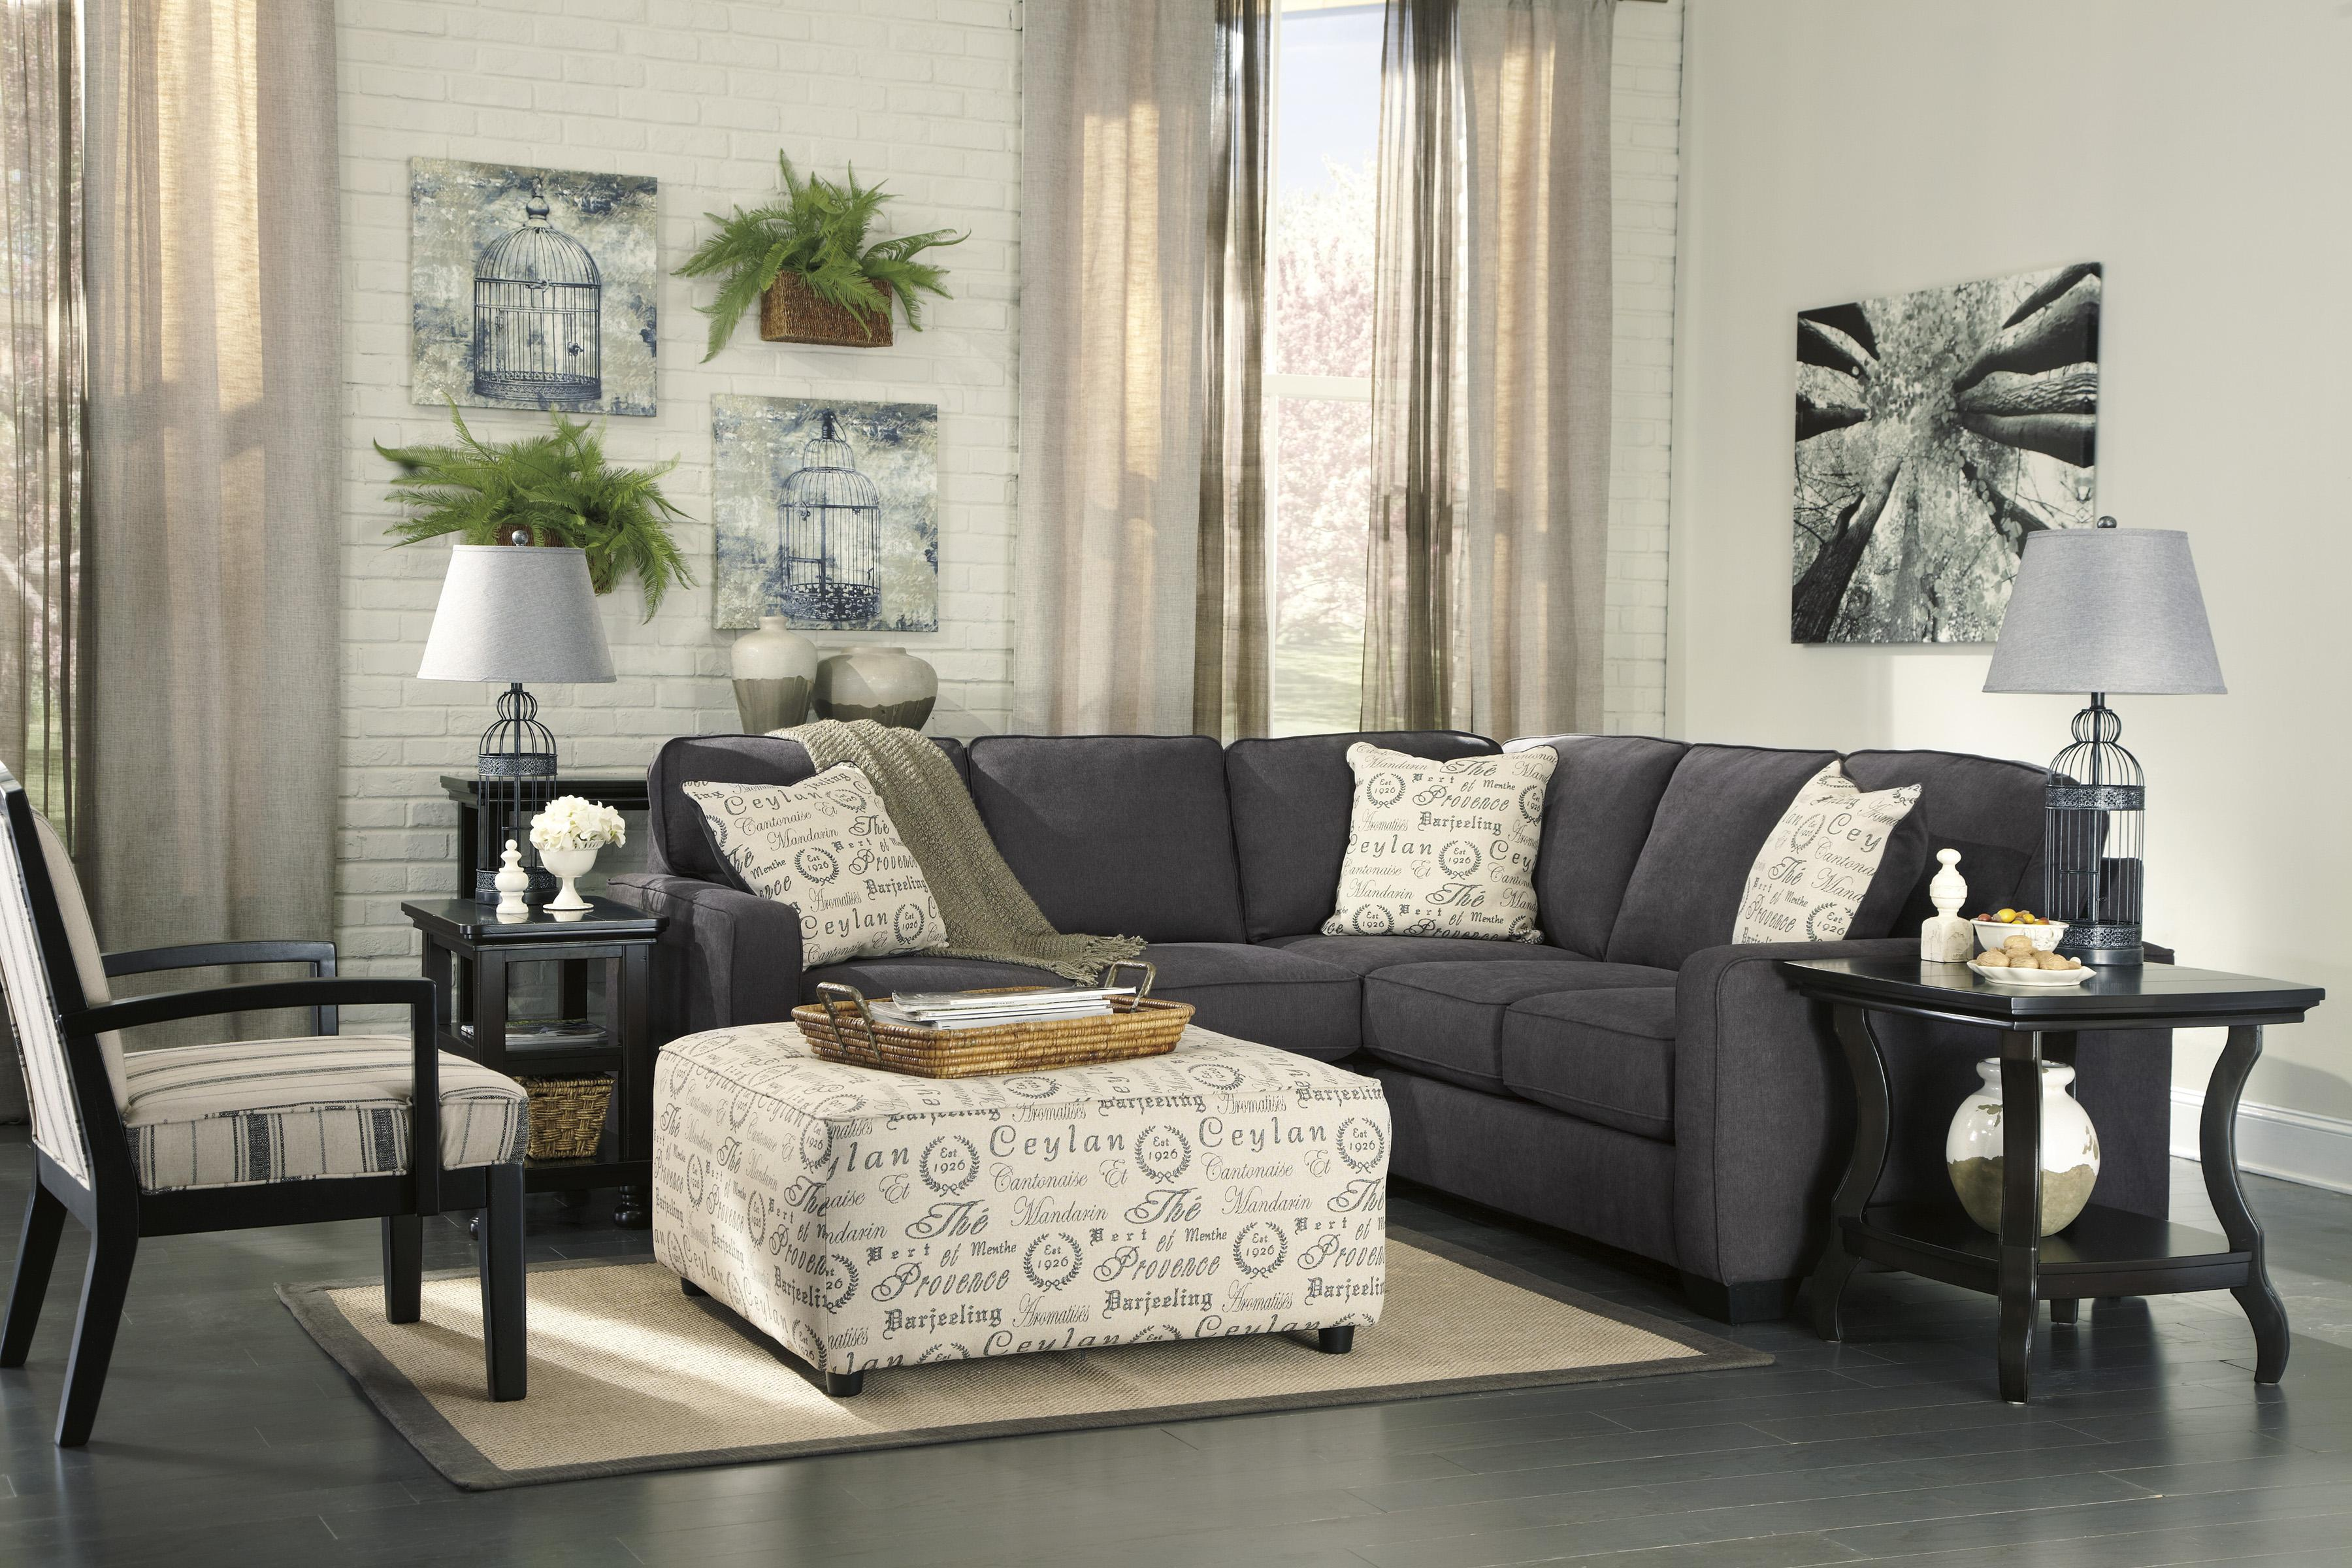 of design furniture sofa sectional living elegant loveseat room best beautiful attachment sets deals